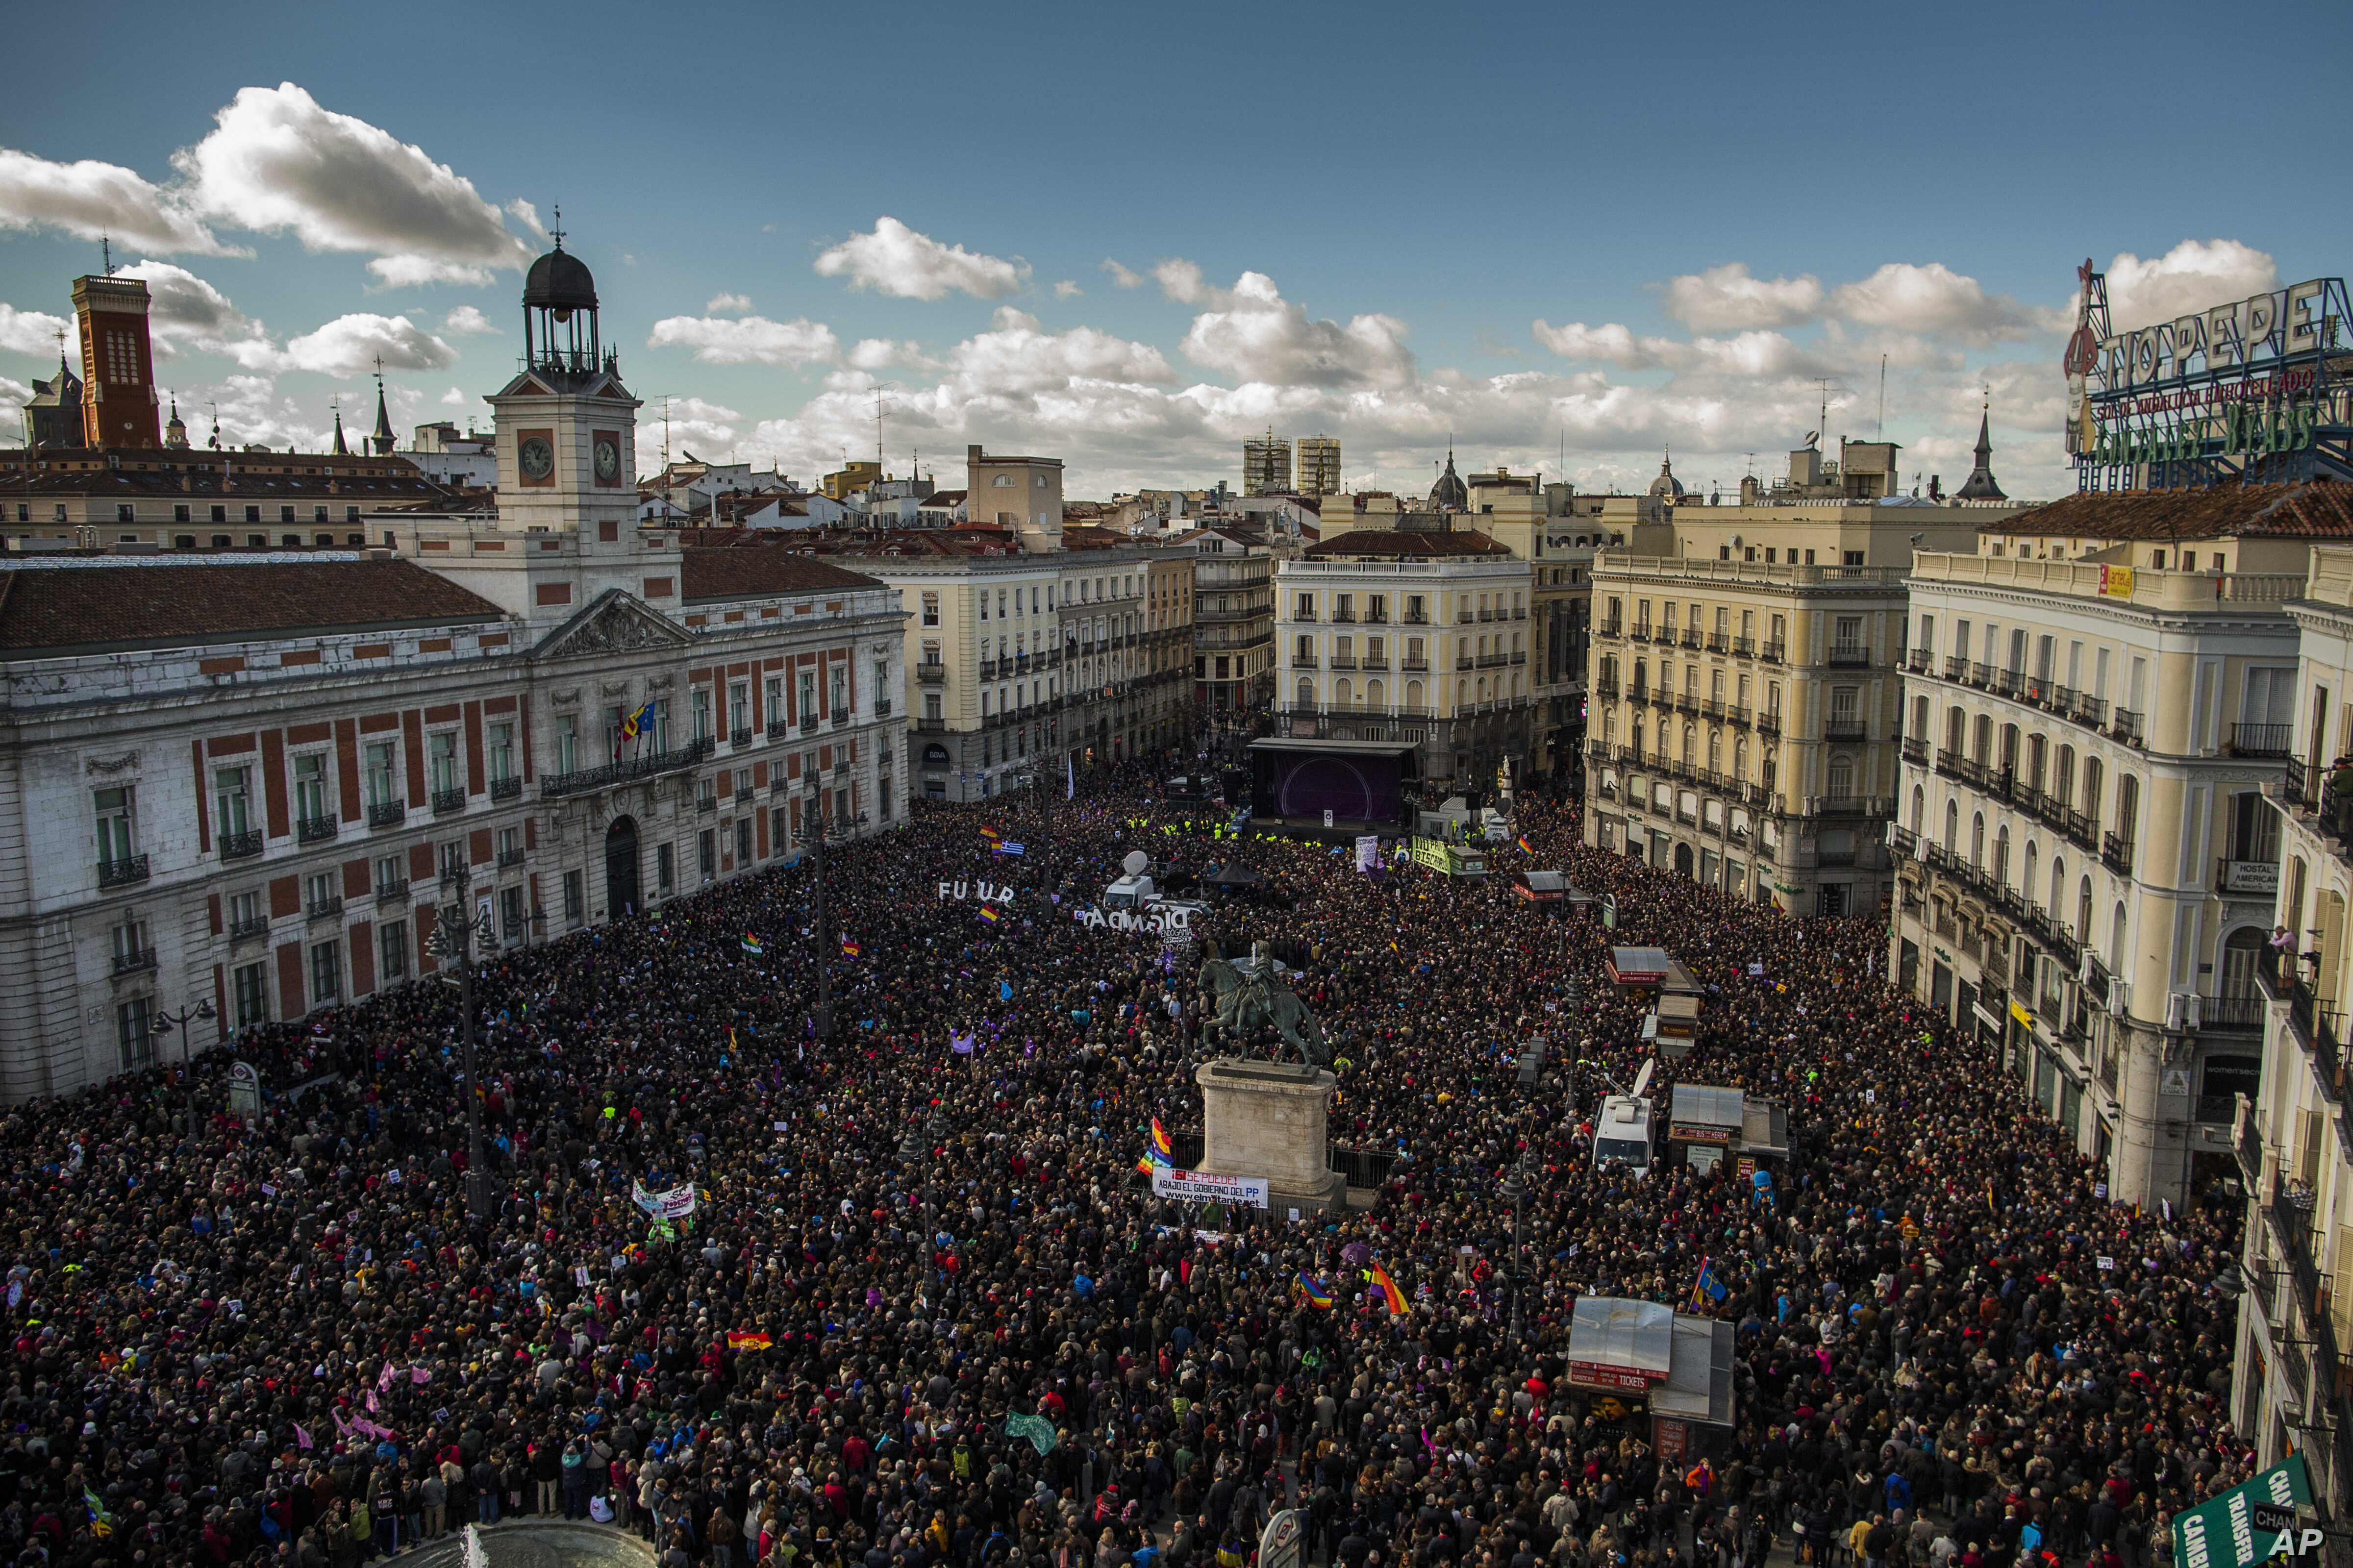 People fill the main square of Madrid during a march by members of the Podemos party, which hopes to emulate the electoral success of Greece's Syriza party in elections later this year, Jan. 31, 2015.